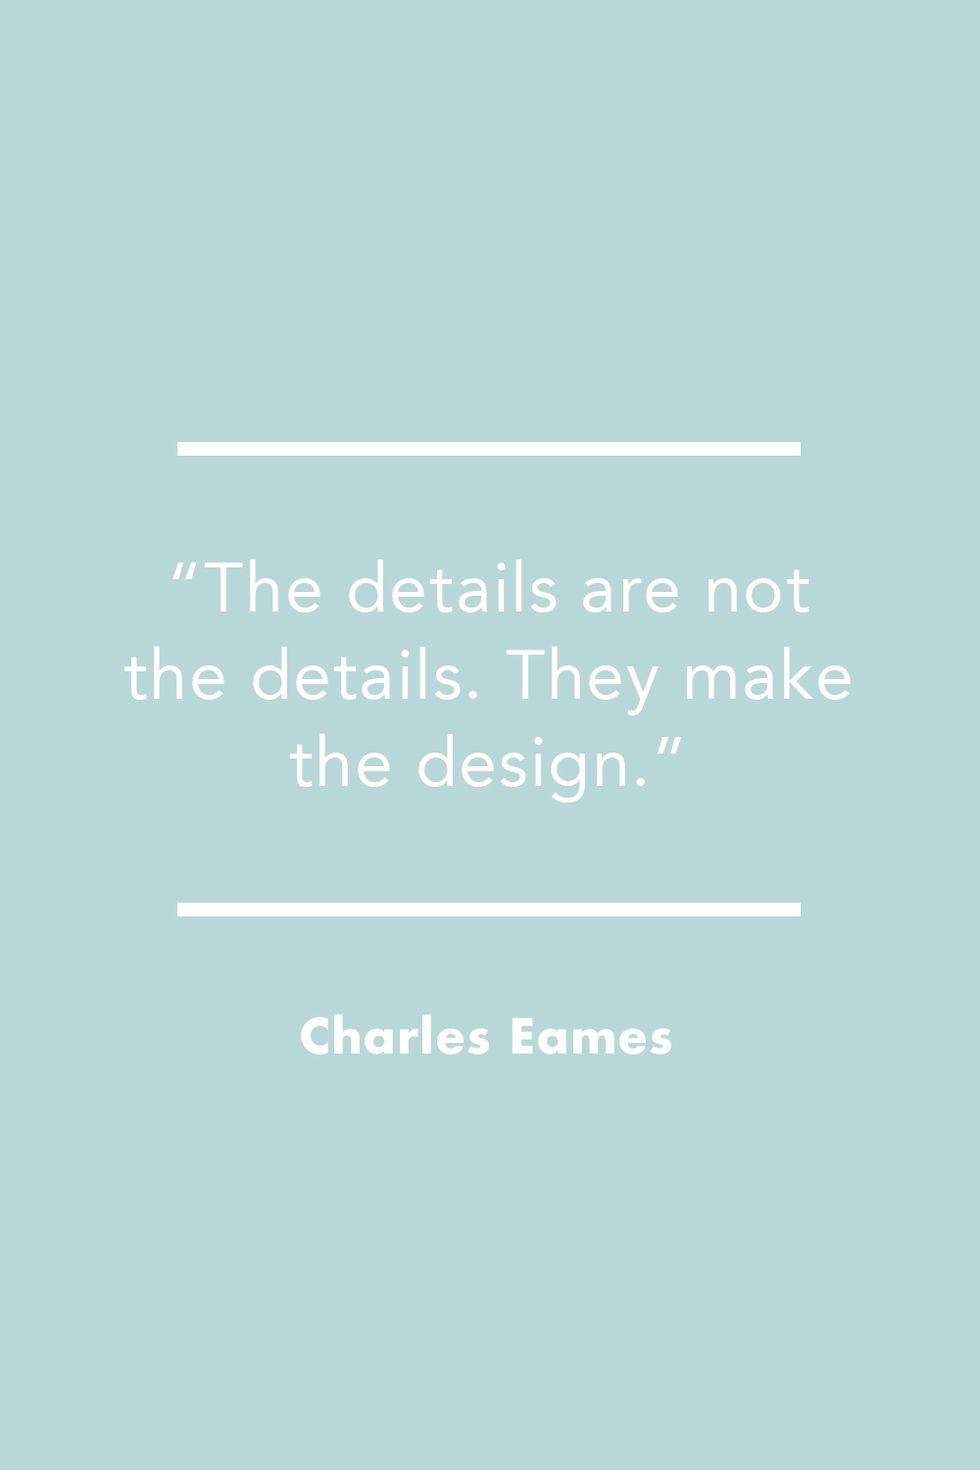 Our Favorite Quotes About Design Are Full Of Inspiration In 2020 With Images Interior Design Quotes Design Quotes Architecture Quotes